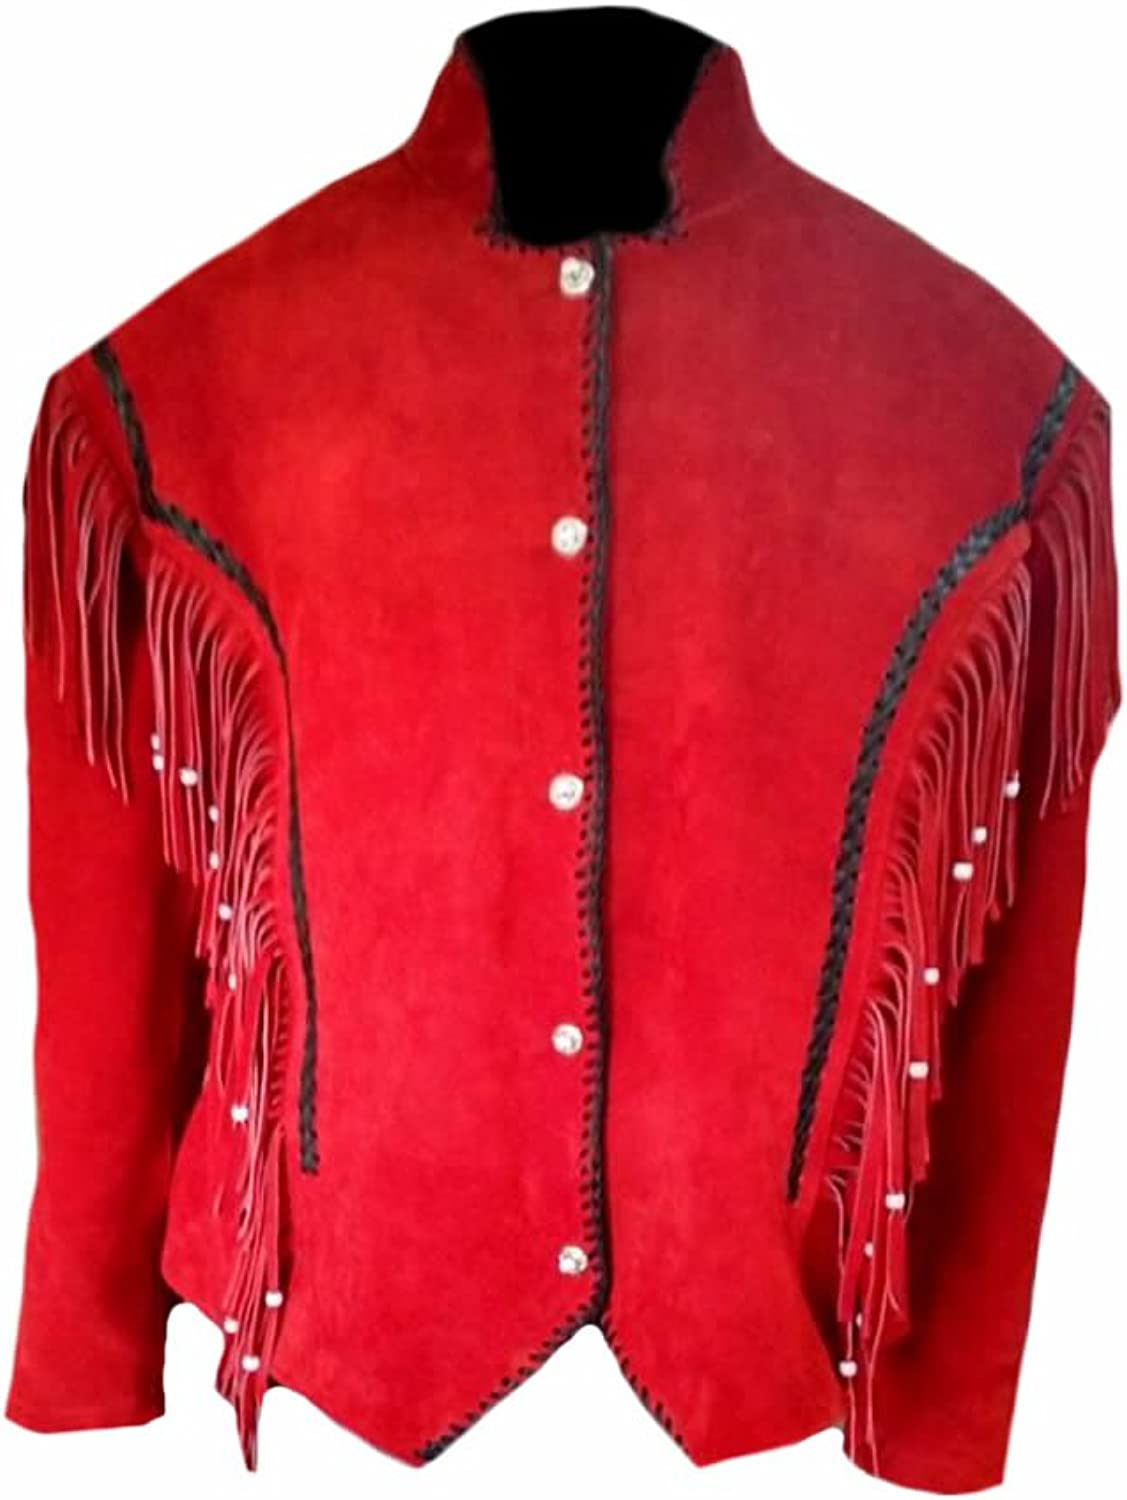 Classyak Women's Western Suede Leather Red Jacket